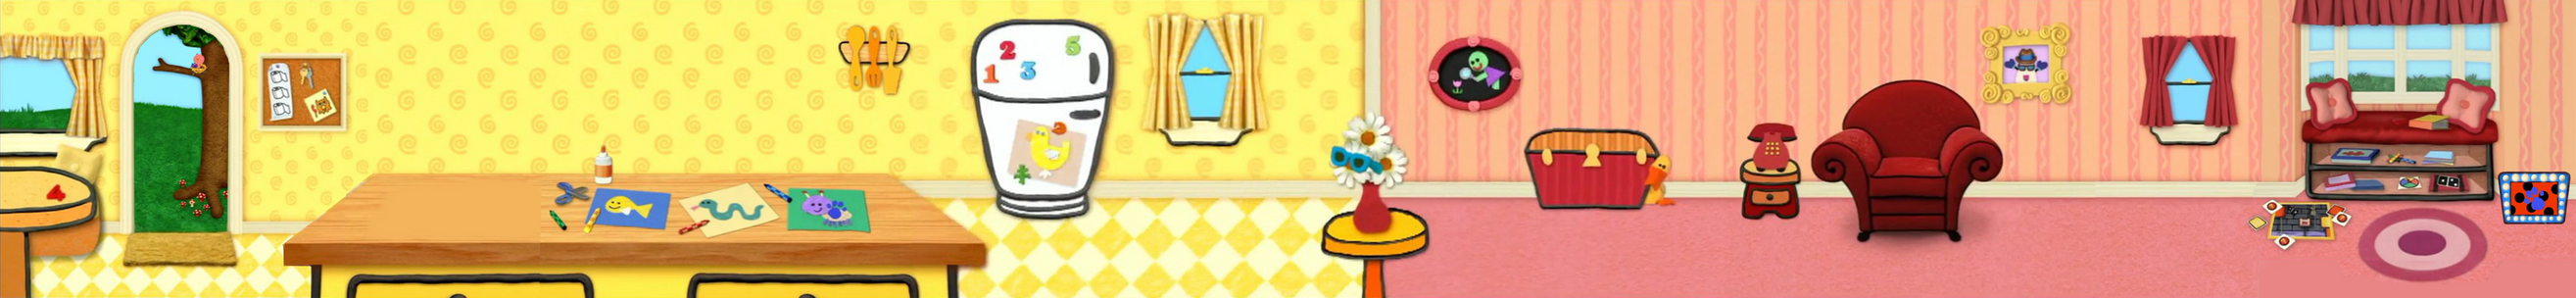 Blue's Clues Look Carefully Background